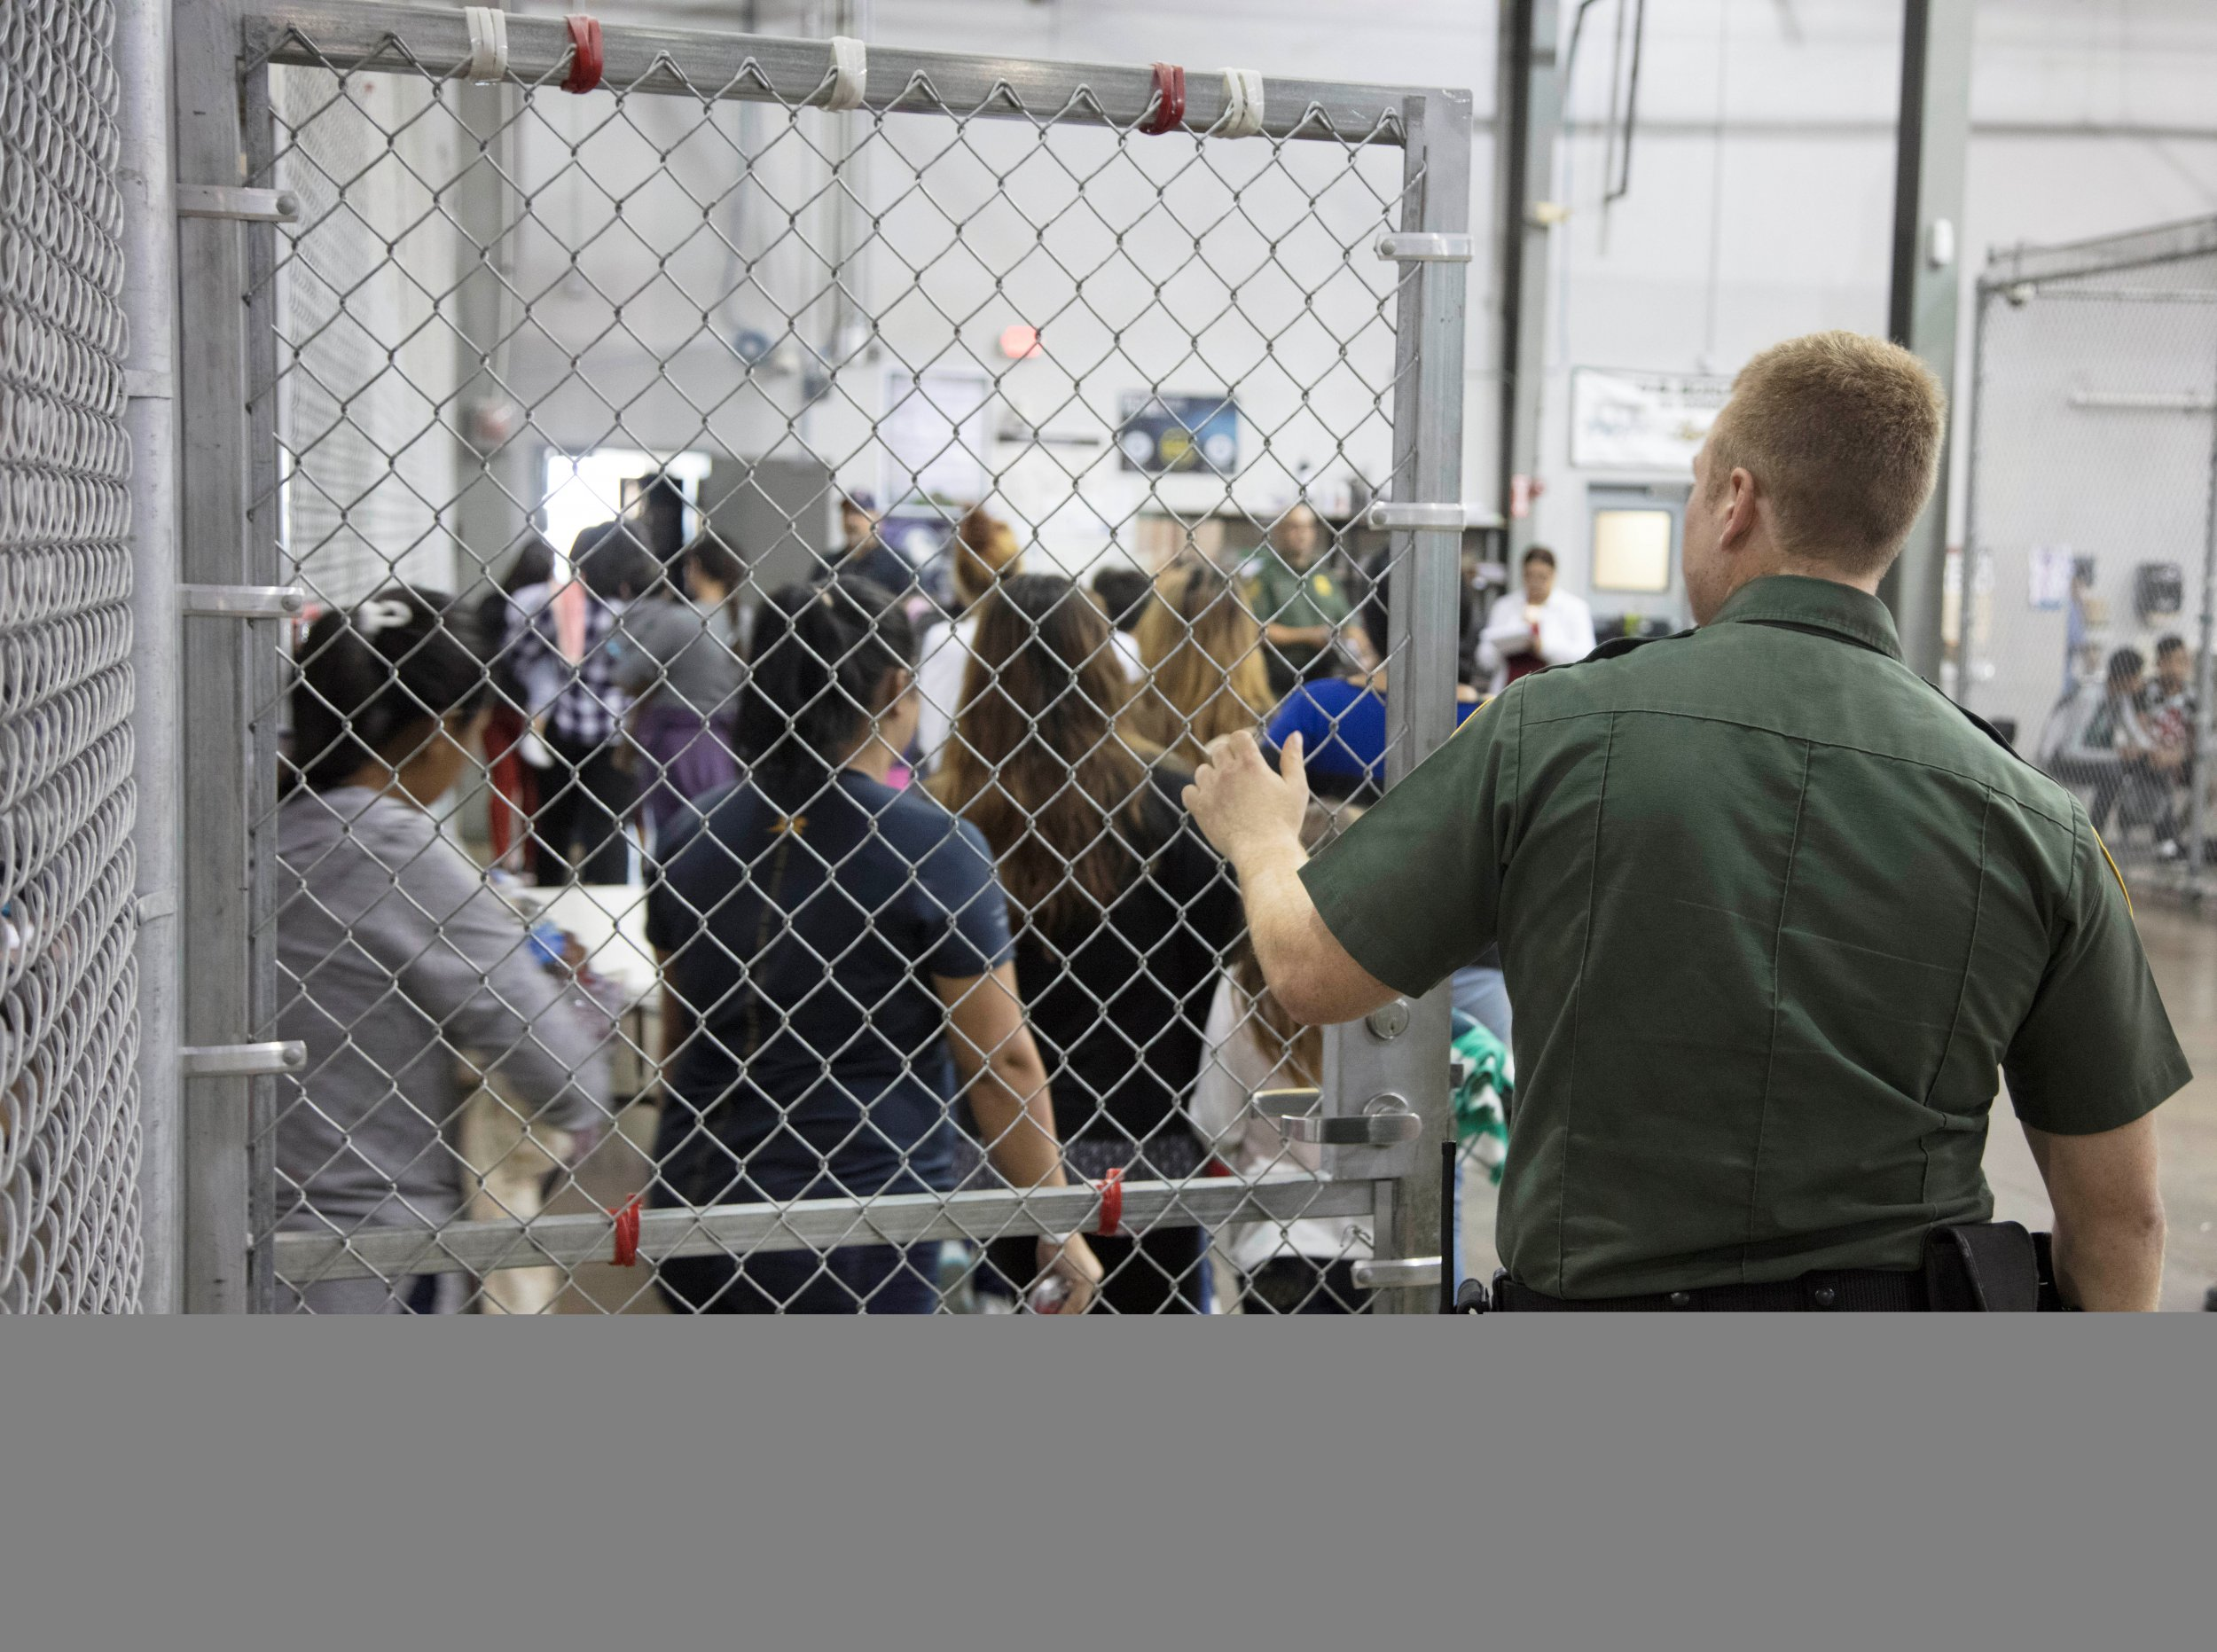 ICE Detention Centers Aren't Adequately Inspected, With